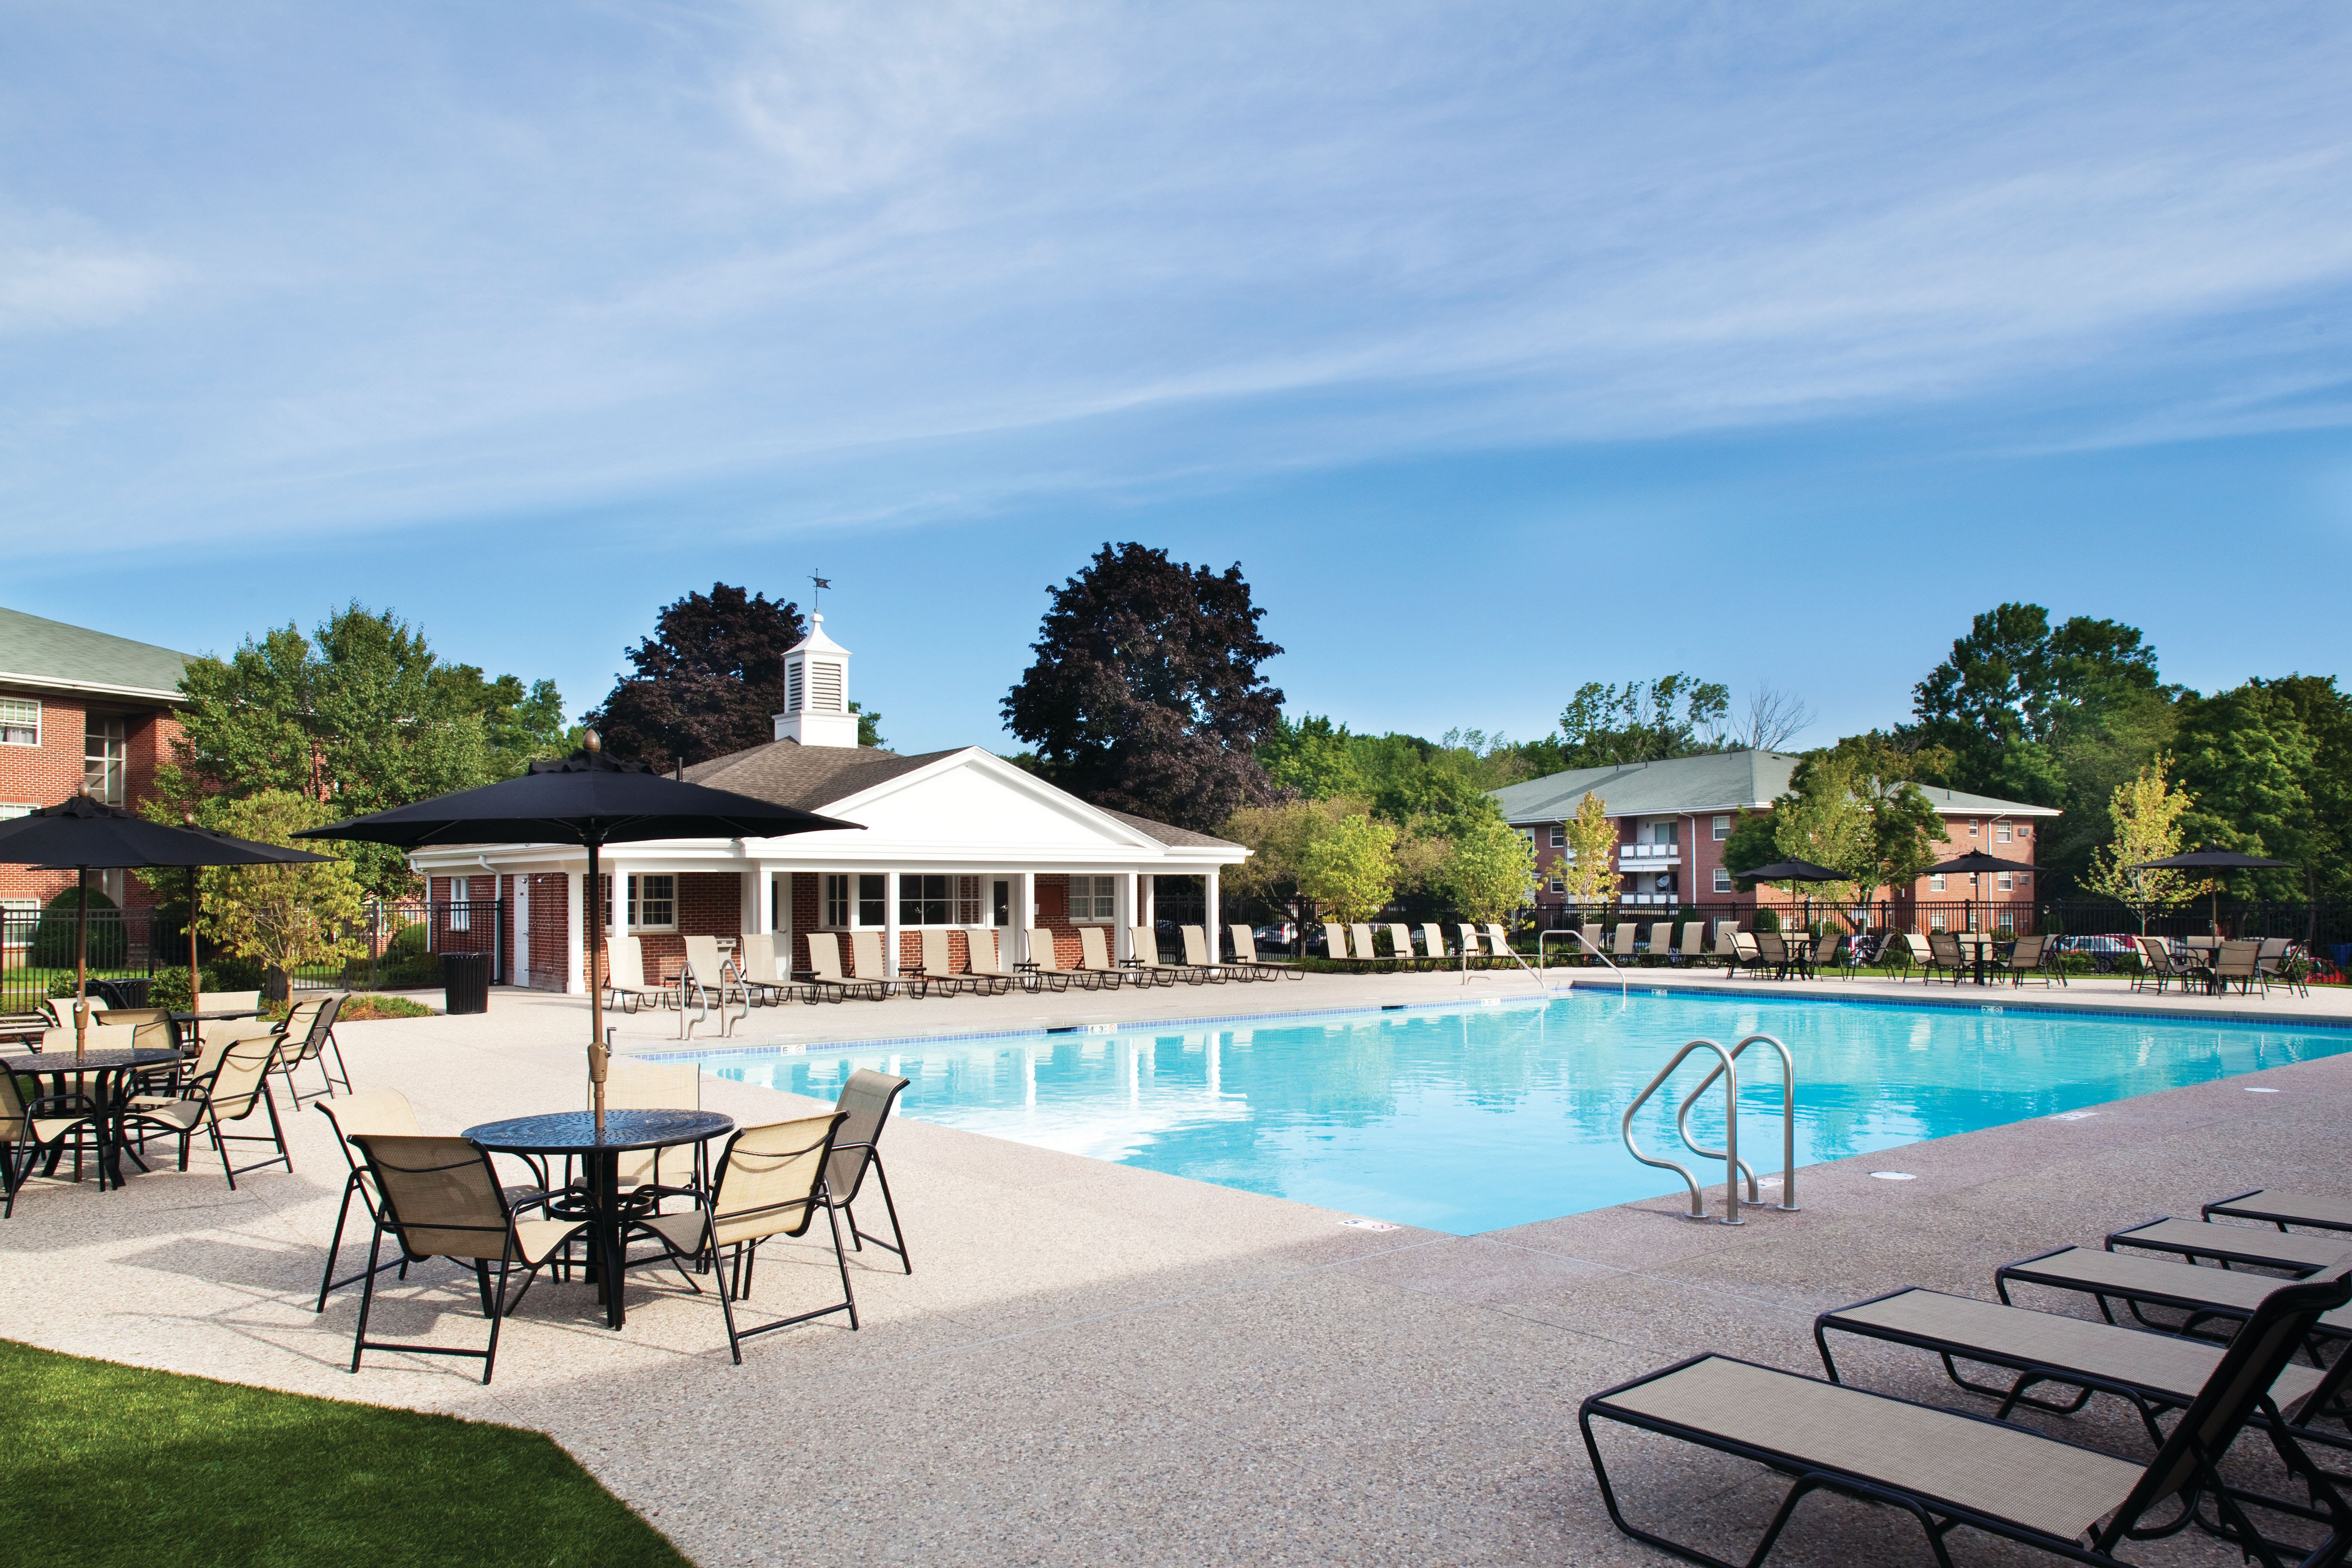 Lounge seating by pool at Gardencrest in Waltham, Massachusetts